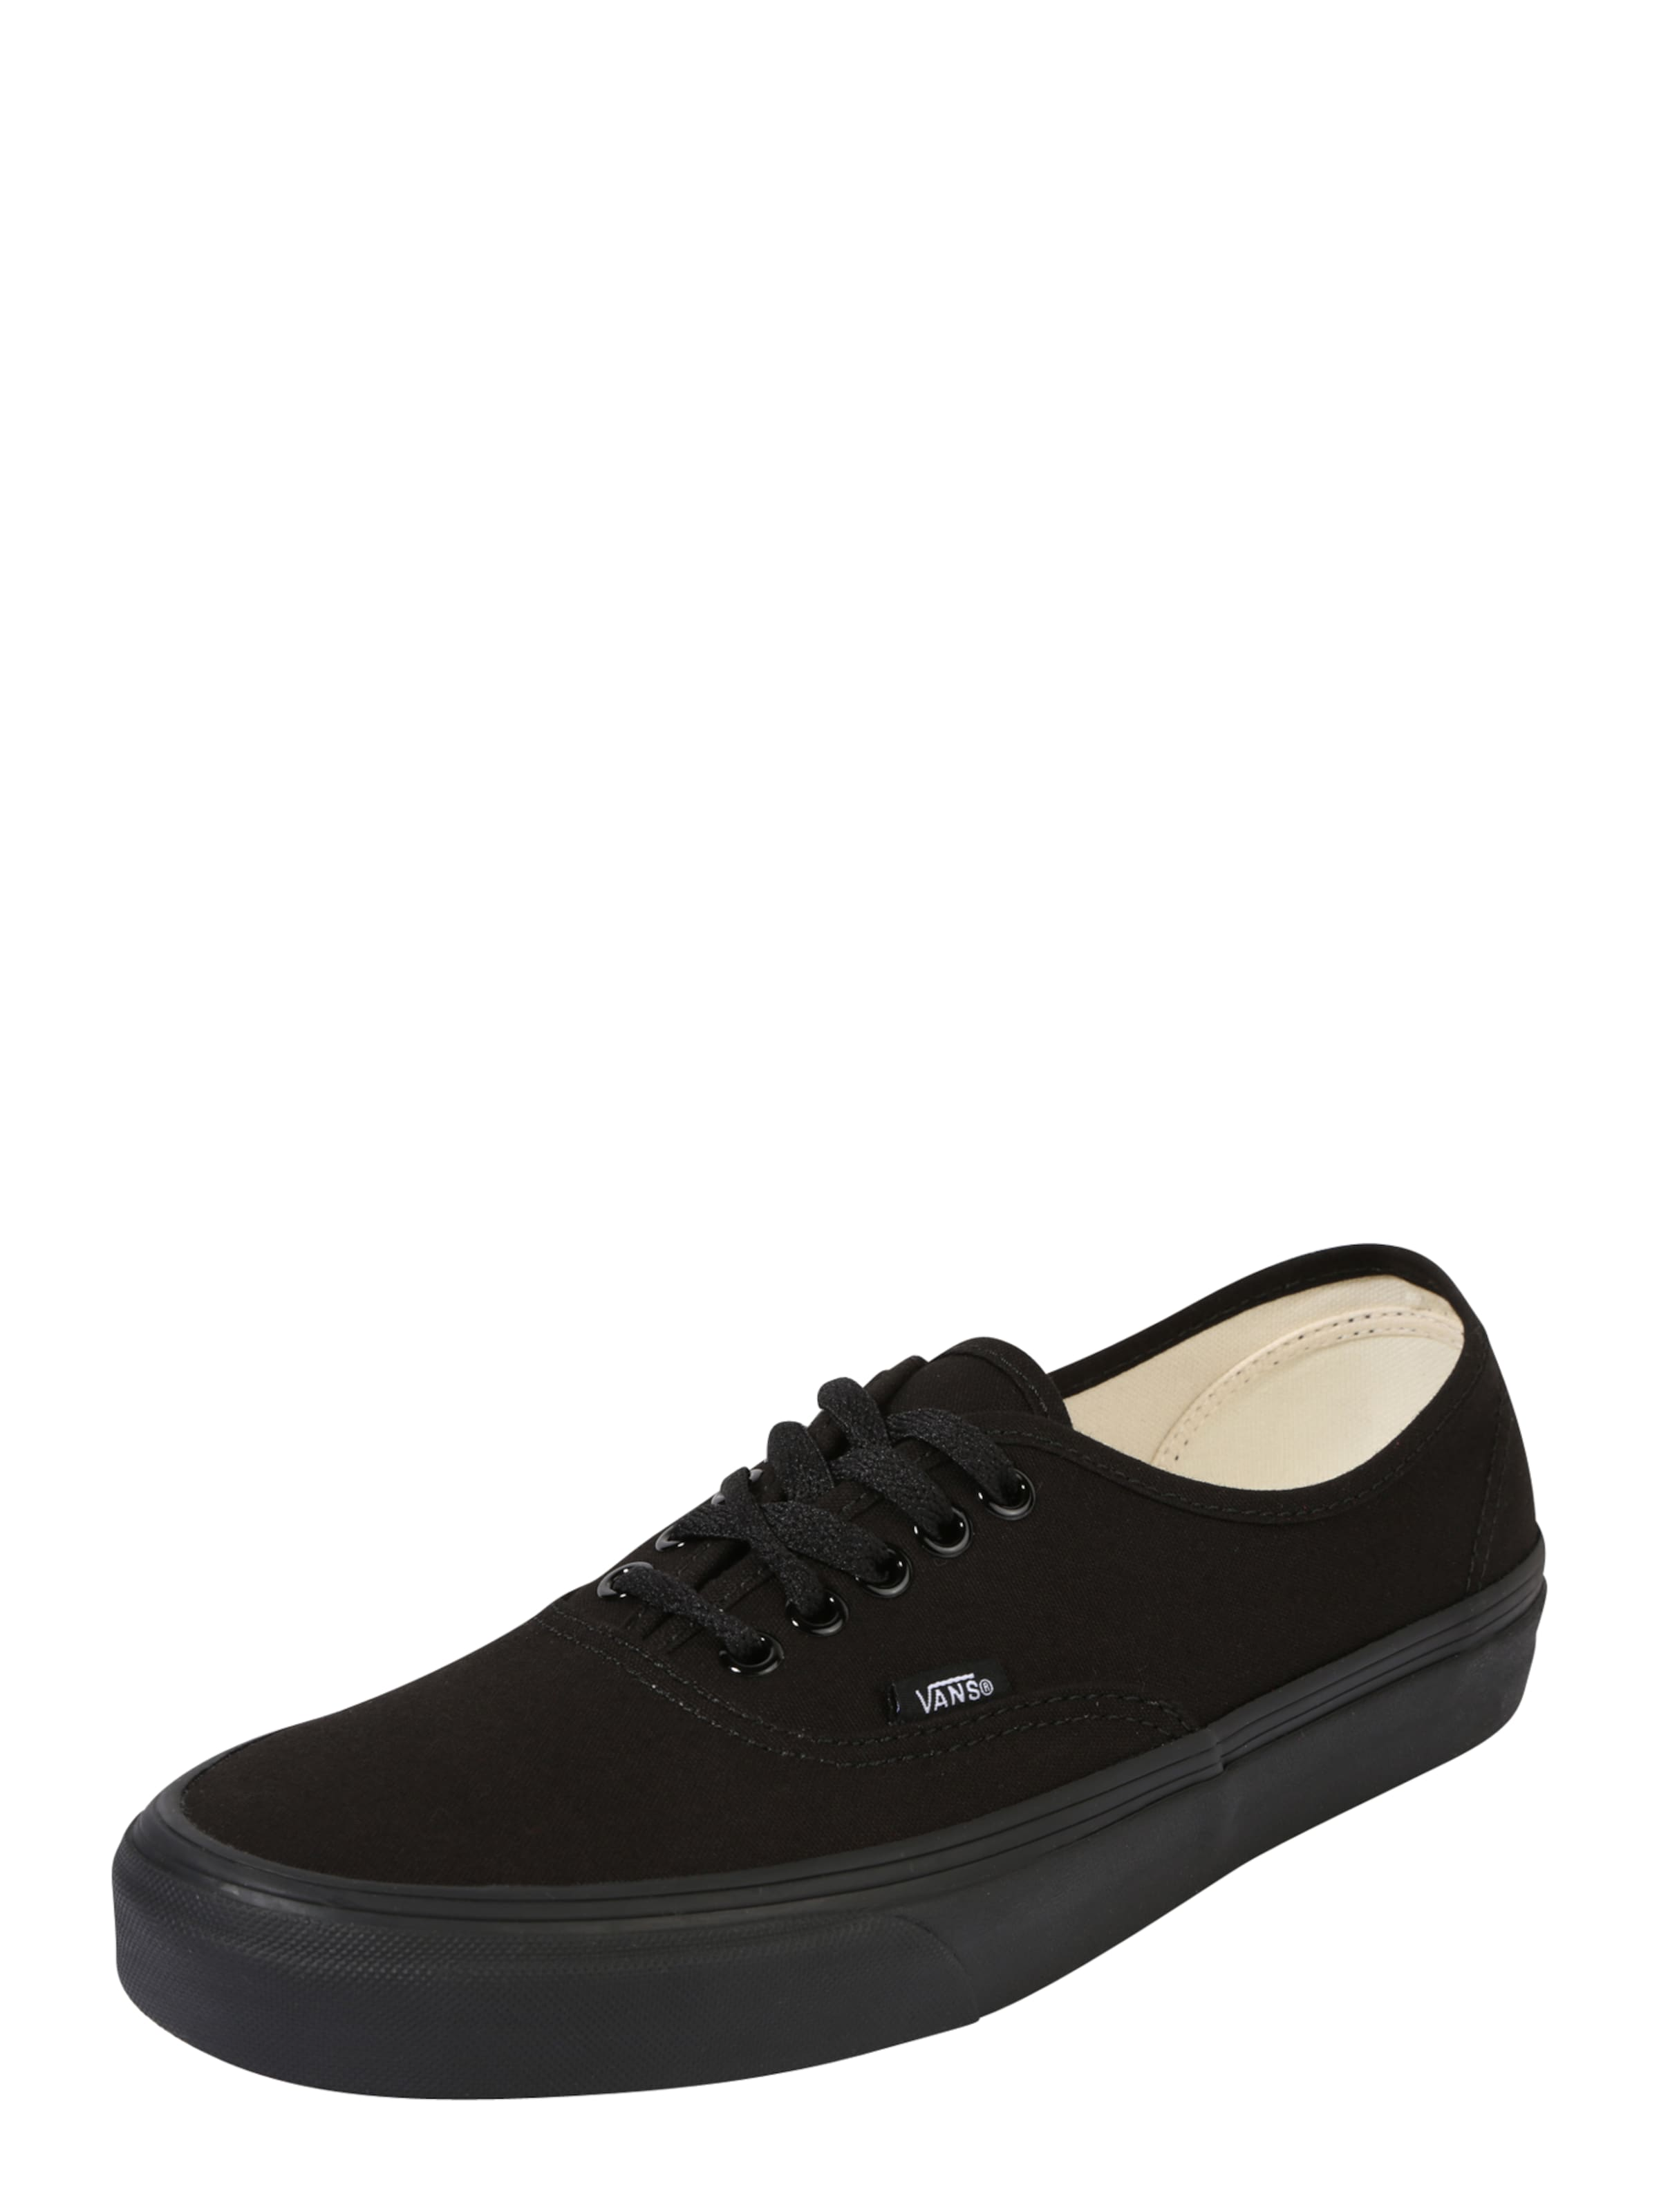 In Sneaker 'authentic' Schwarz Vans Schwarz Vans Sneaker Vans 'authentic' In Y6fbg7yv